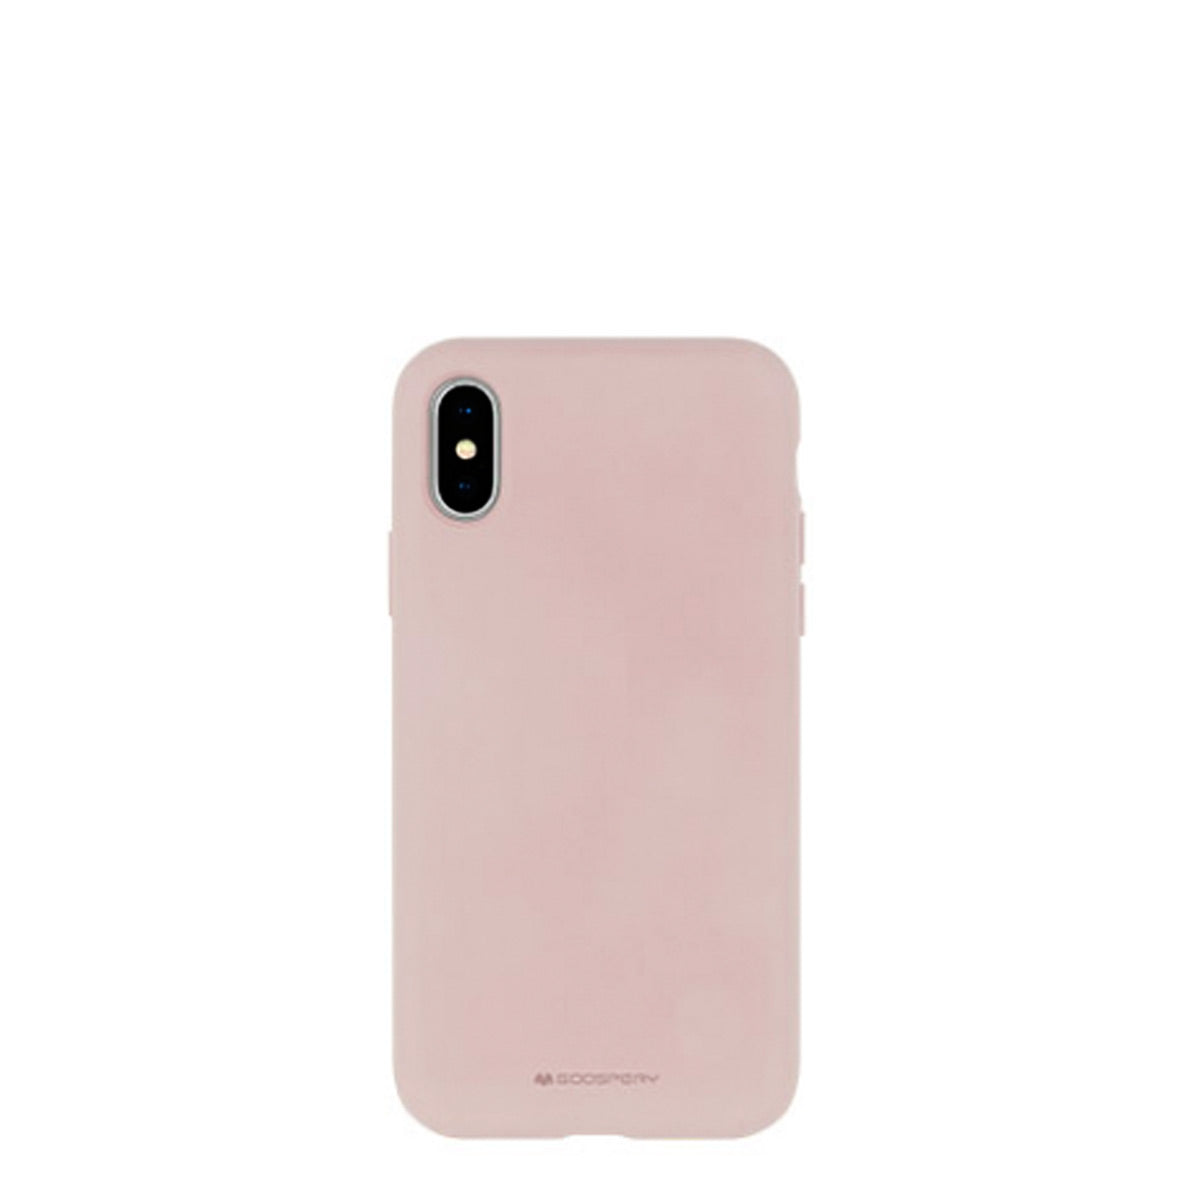 Capa de Smartphone Mercury Silicone Cover Apple iPhone 7/ 8/ SE 2020 Rosa Areia